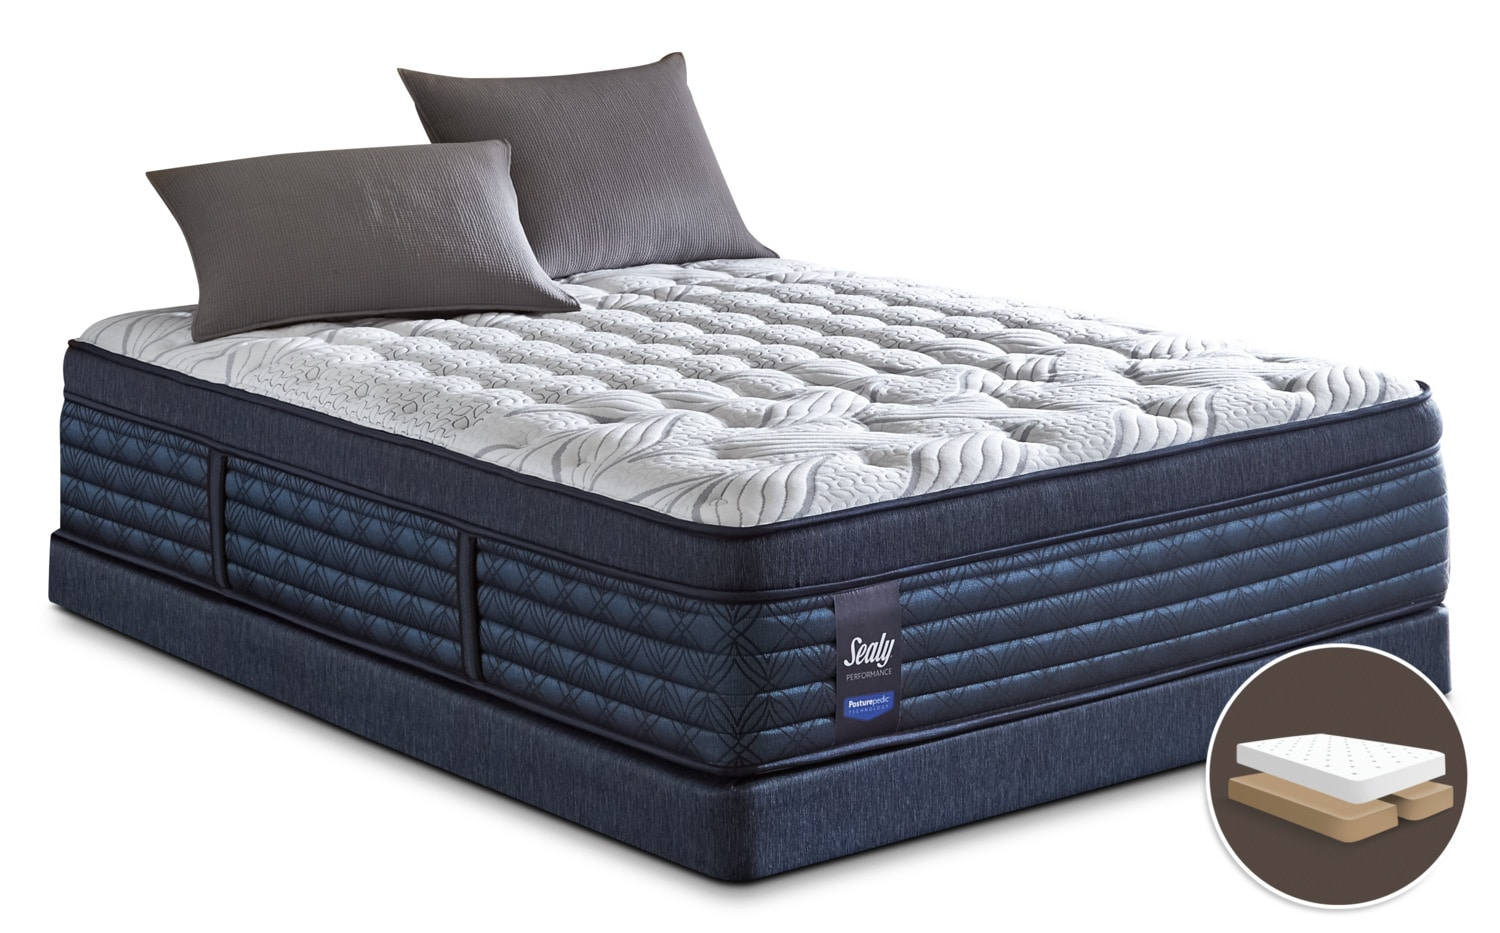 Sealy Posturepedic ProBack Hockenheim Euro-Top Firm Split Queen Mattress Set